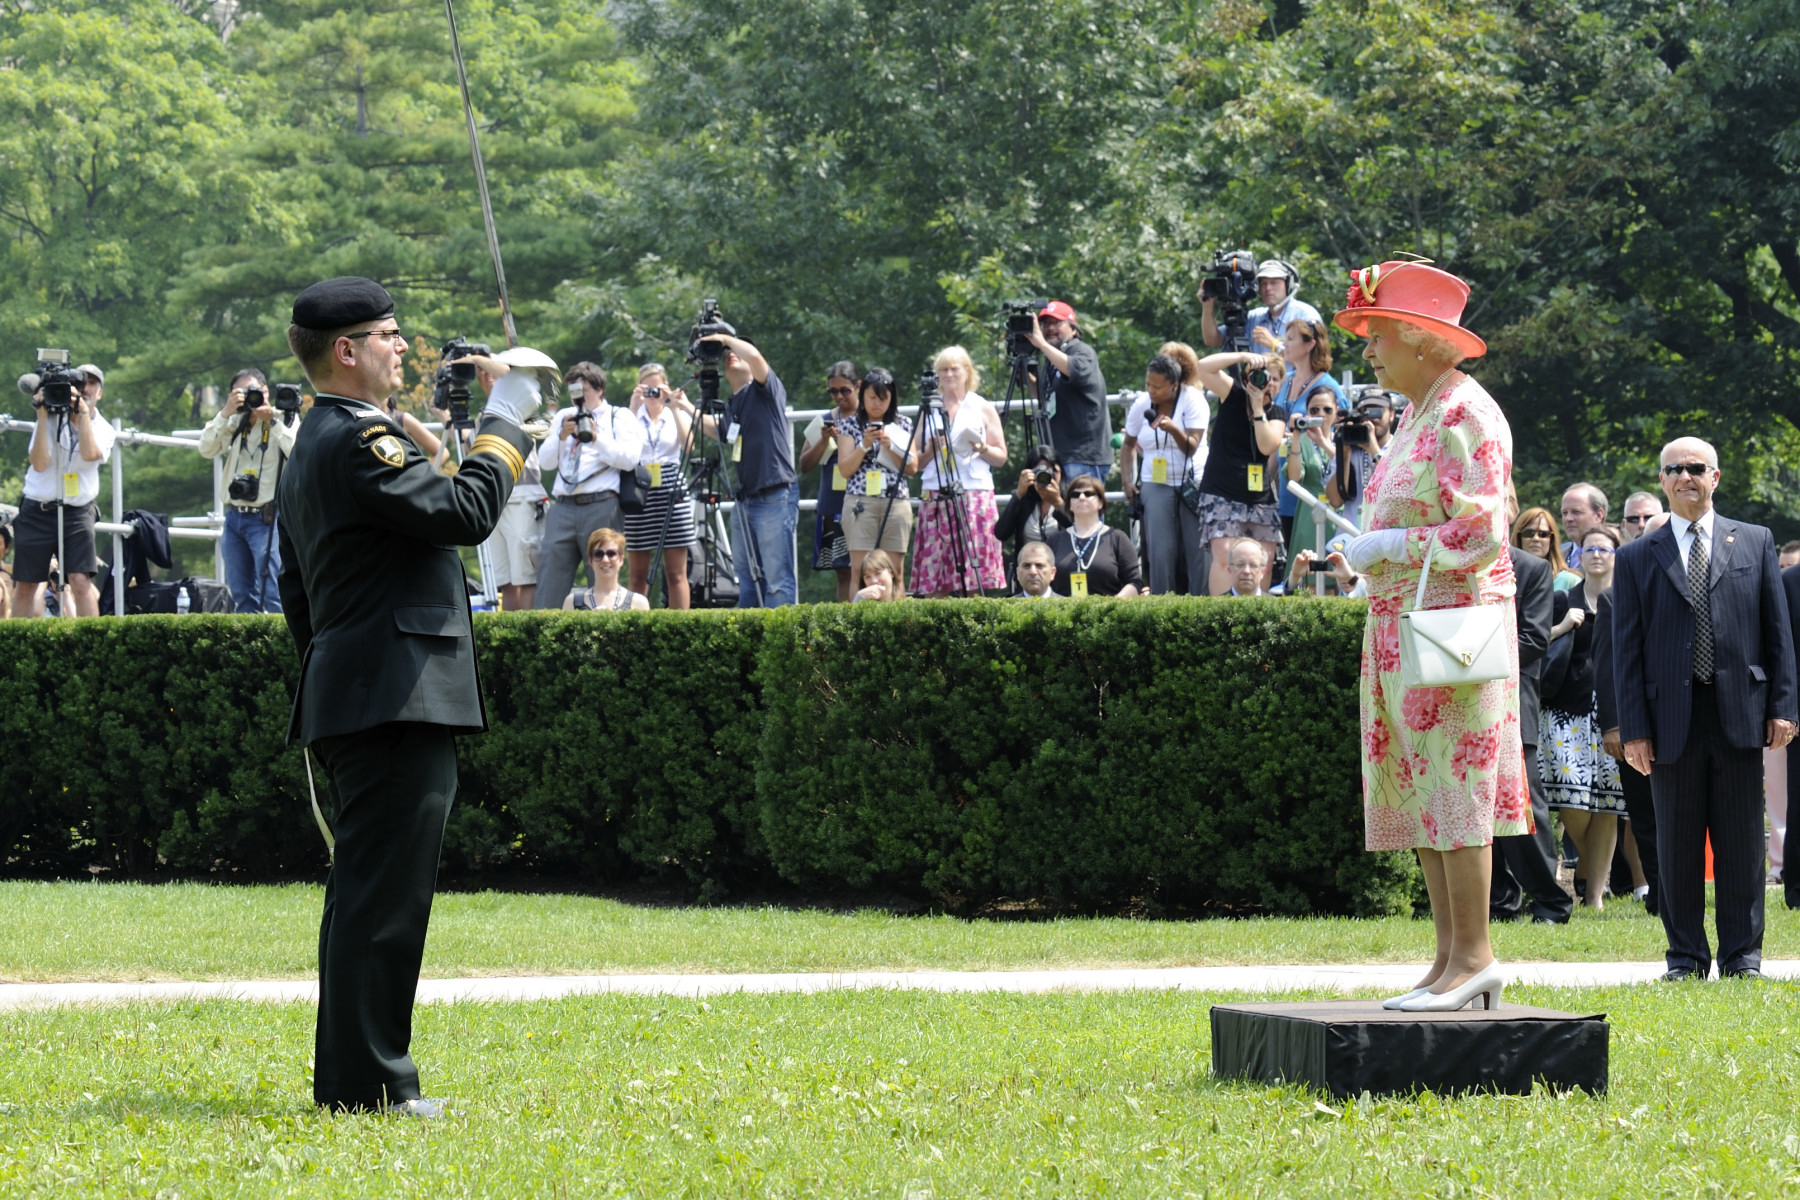 Her Majesty The Queen receives the Royal salute.